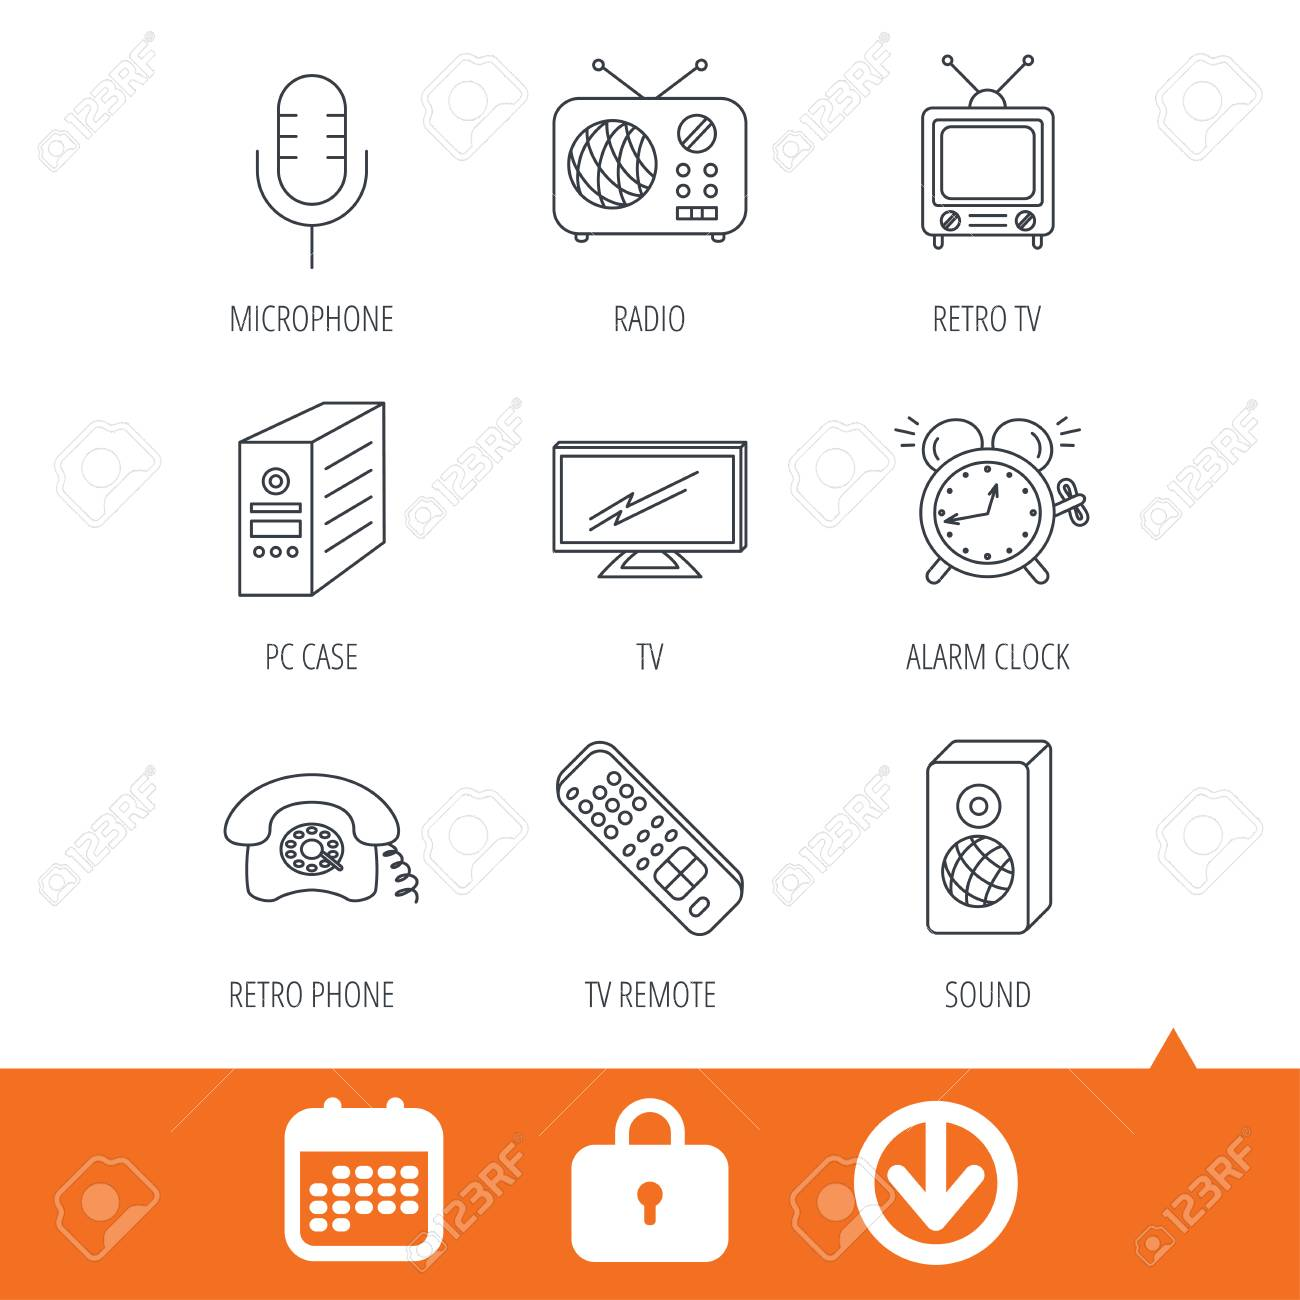 TV remote, retro phone and radio icons  PC case, microphone and